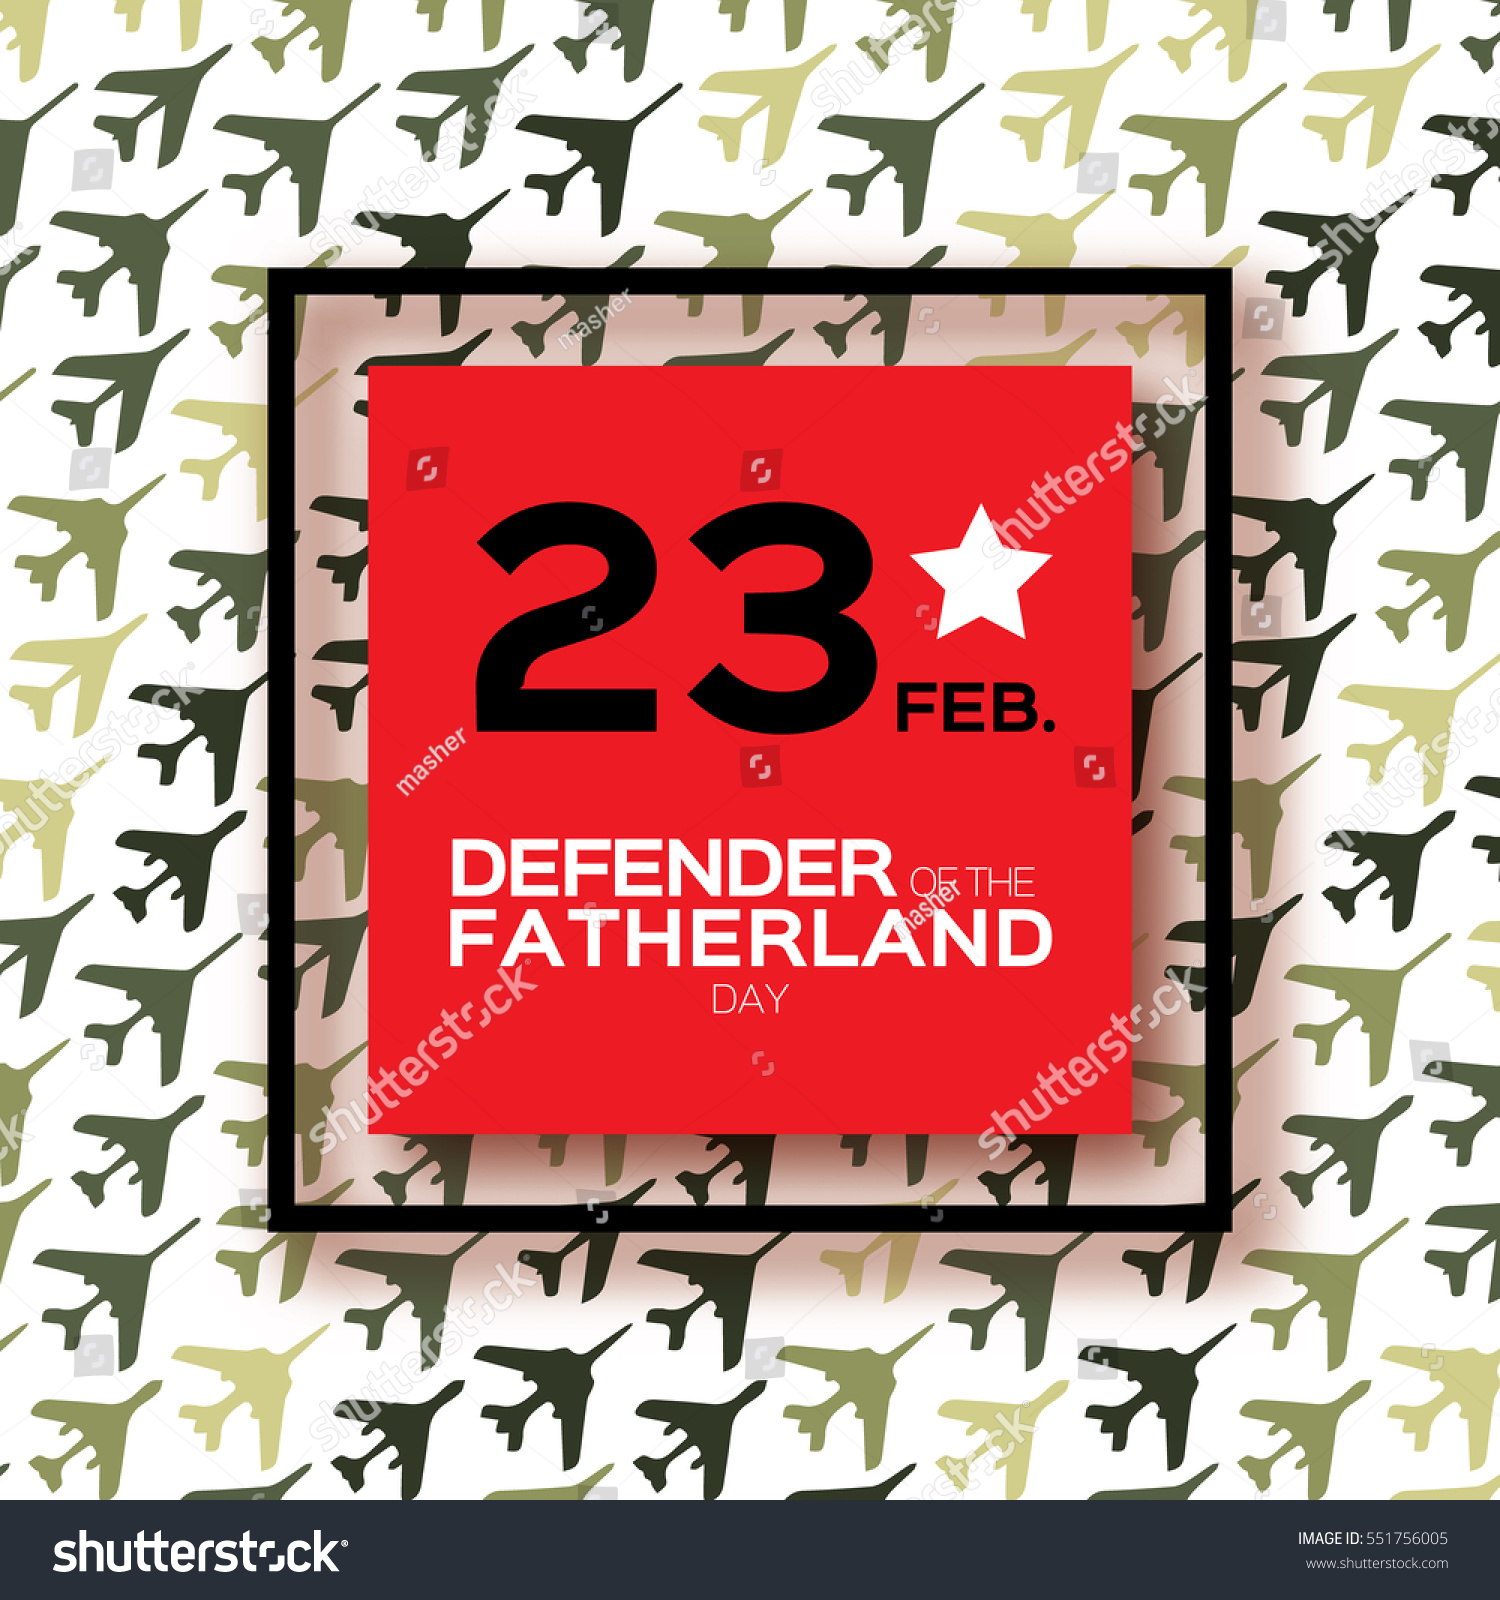 Happy Defender Fatherland Day 23 February Stock Vector 551756005